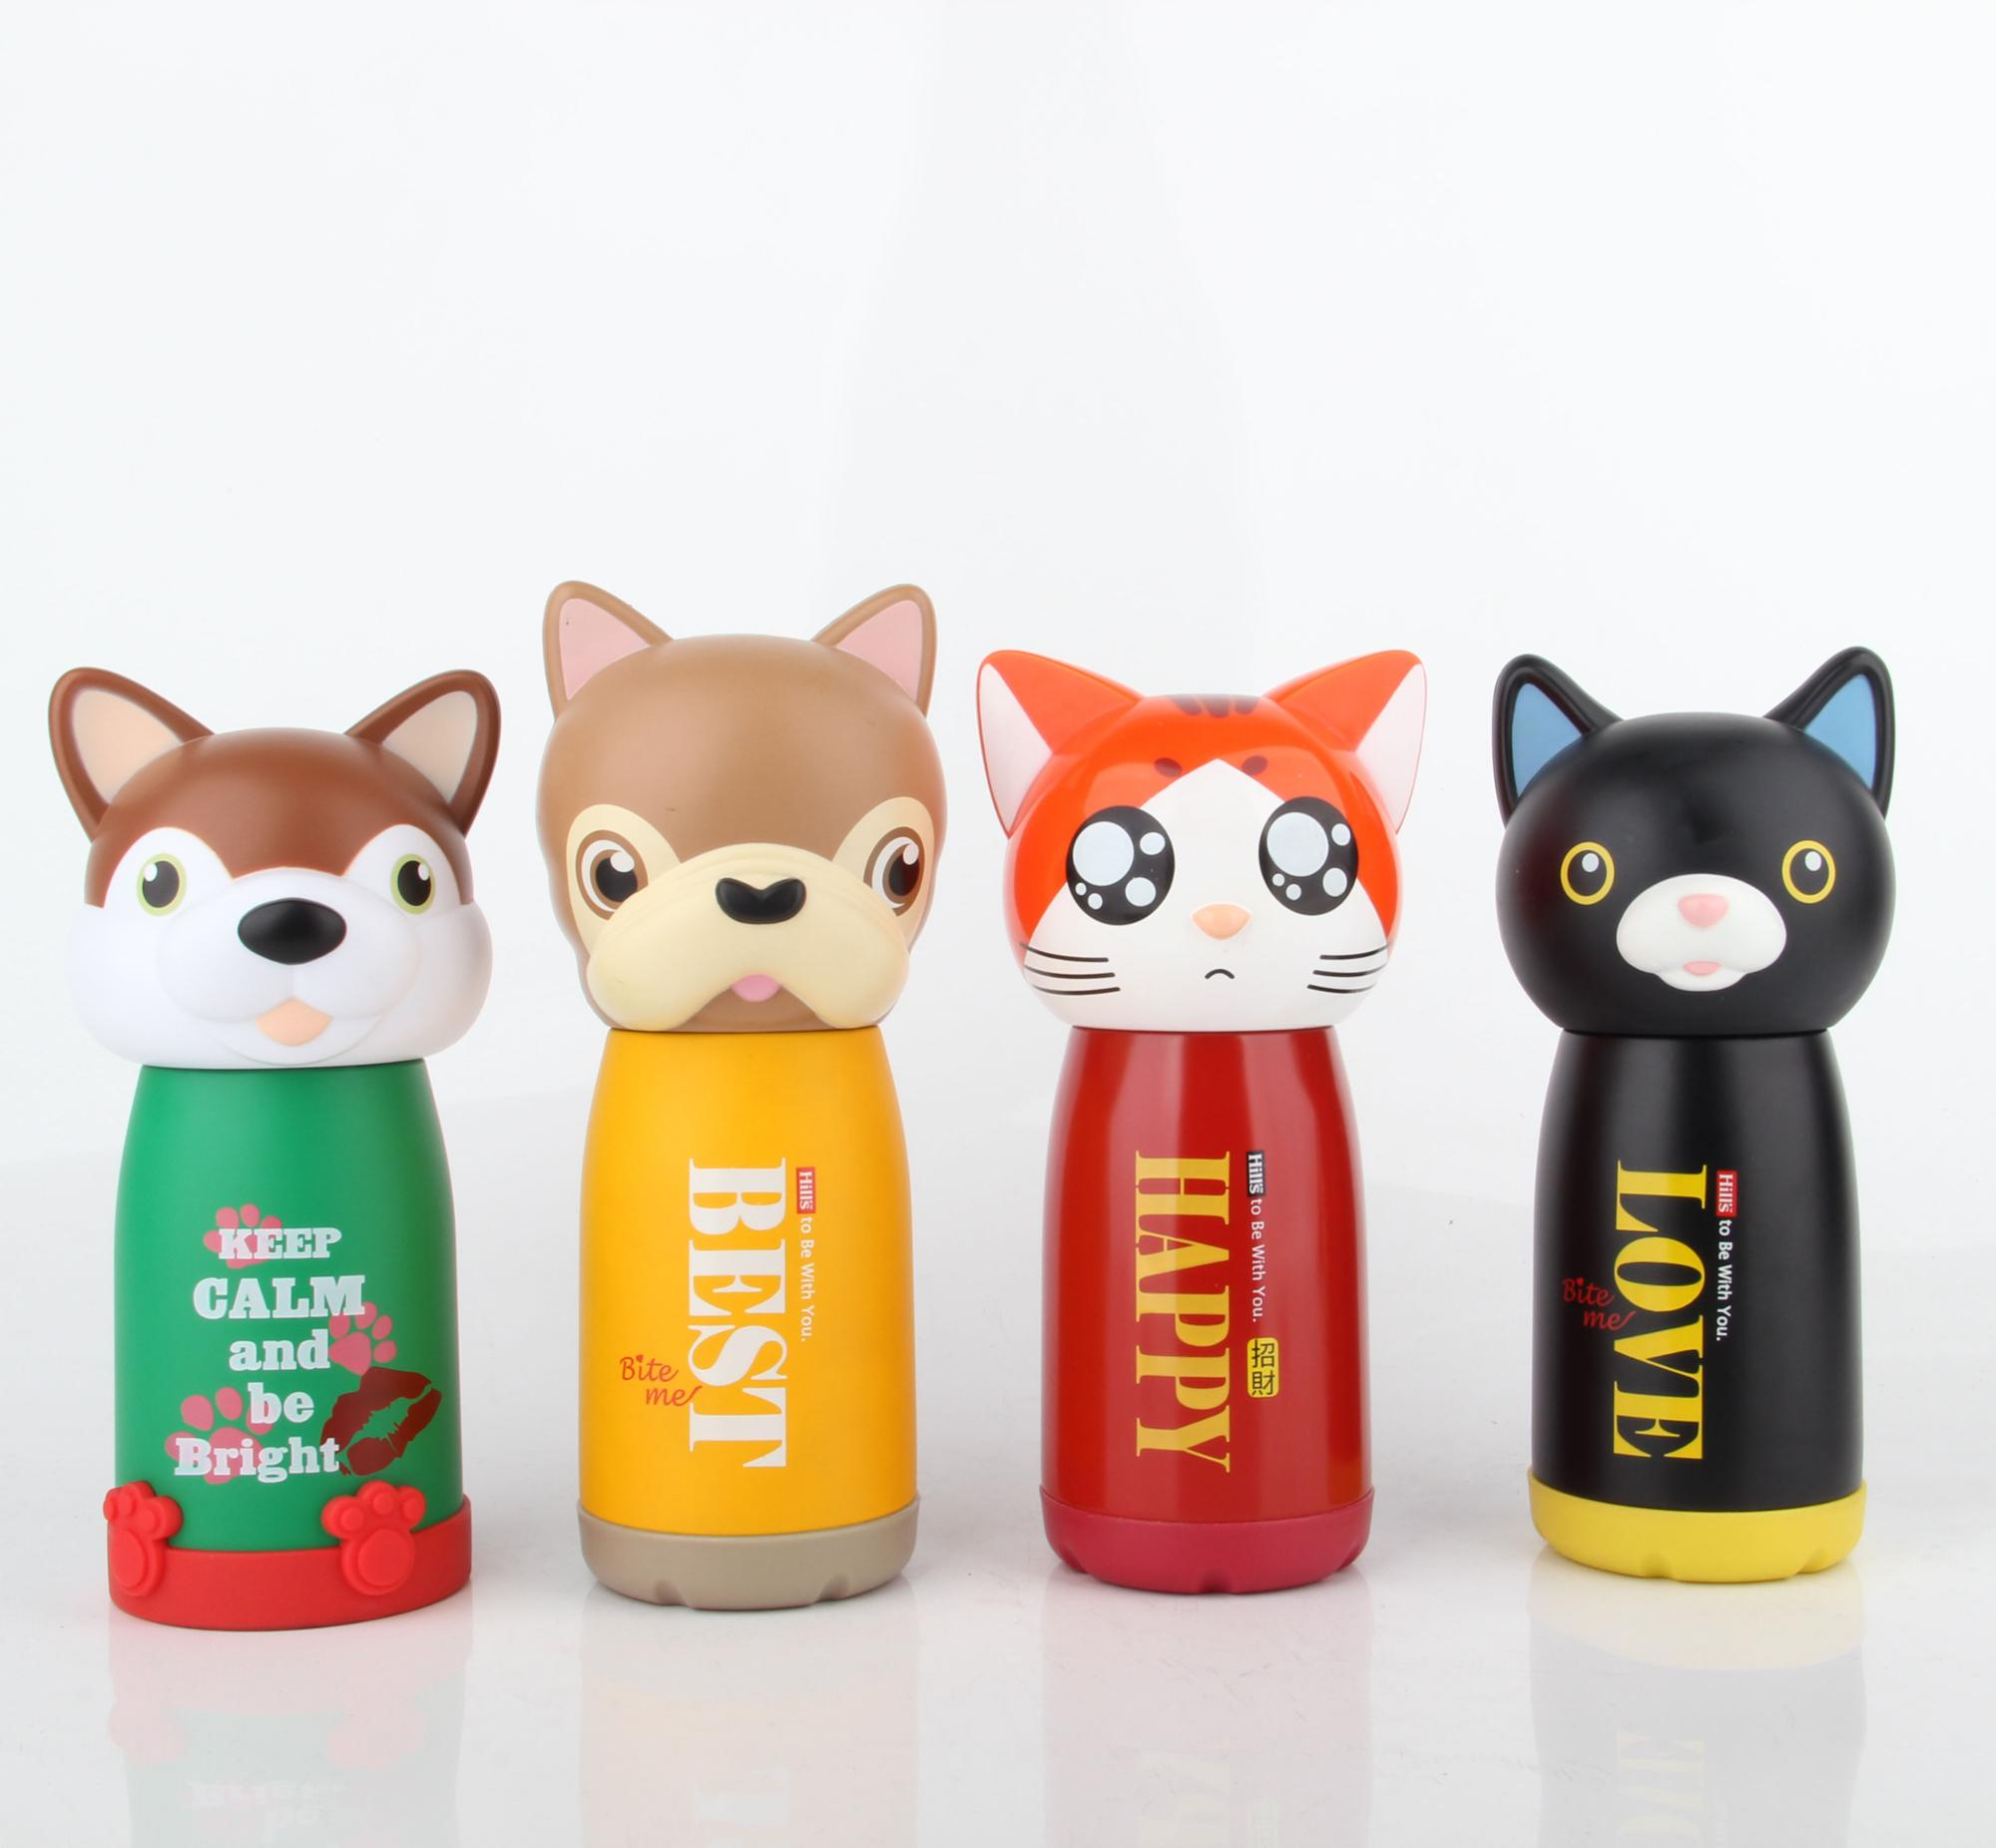 Cute Animal Symbol Water Bottles For Kids - Buy Stainless Steel Water  Bottles For Kids,Animal Shape Water Bottle,Double Wall Insulated Water  Bottles